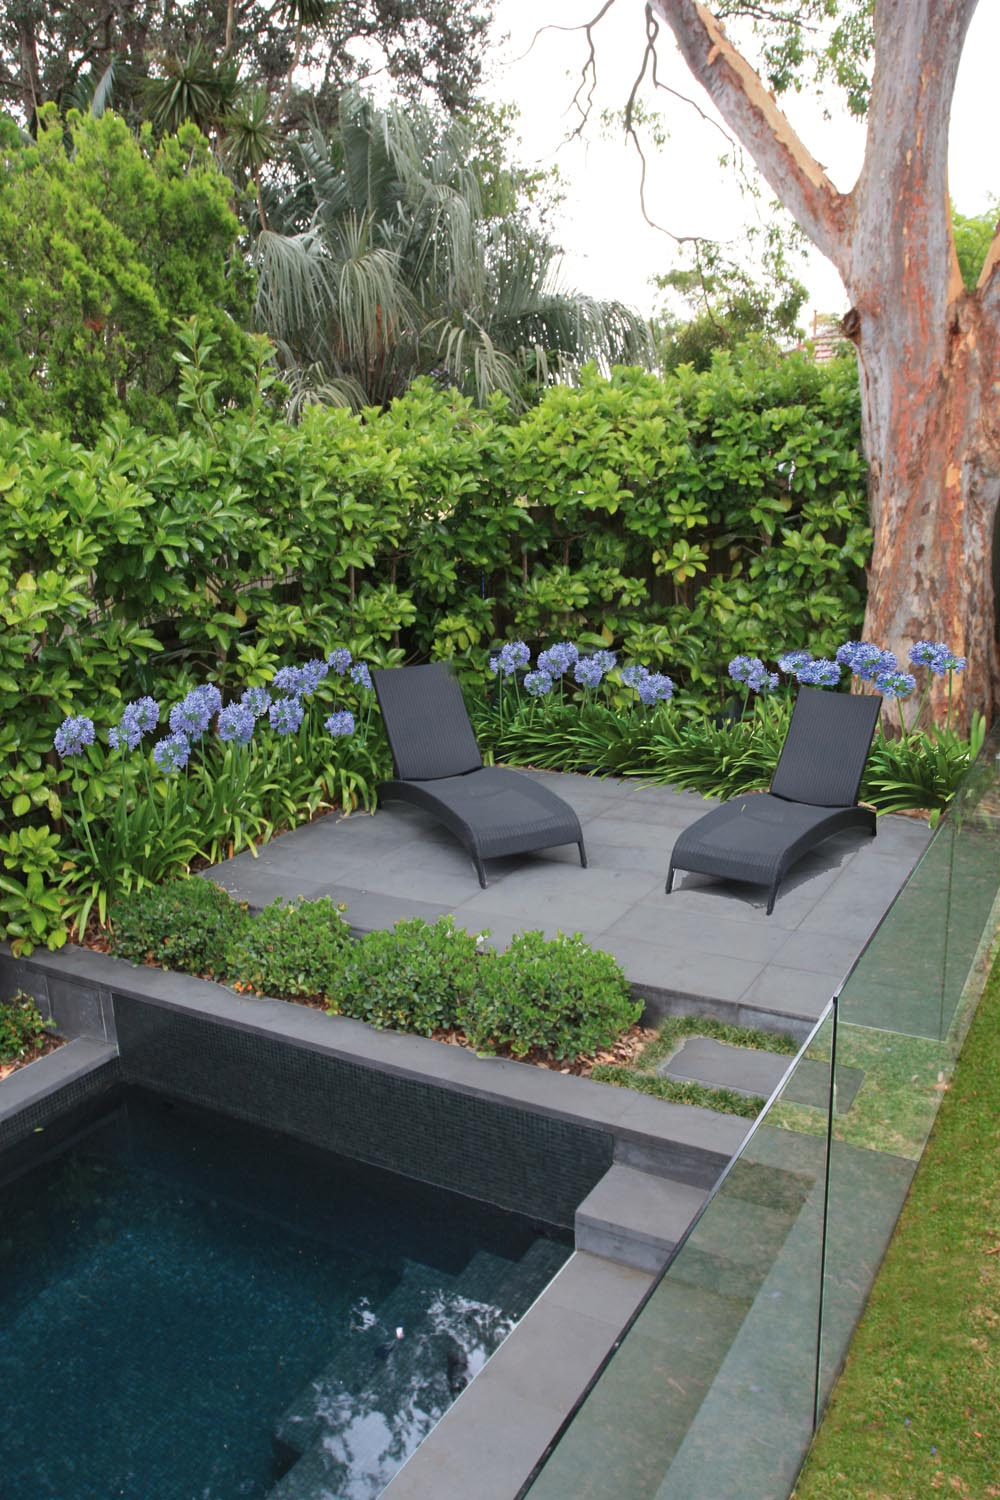 Outdoor furniture and entertaining space